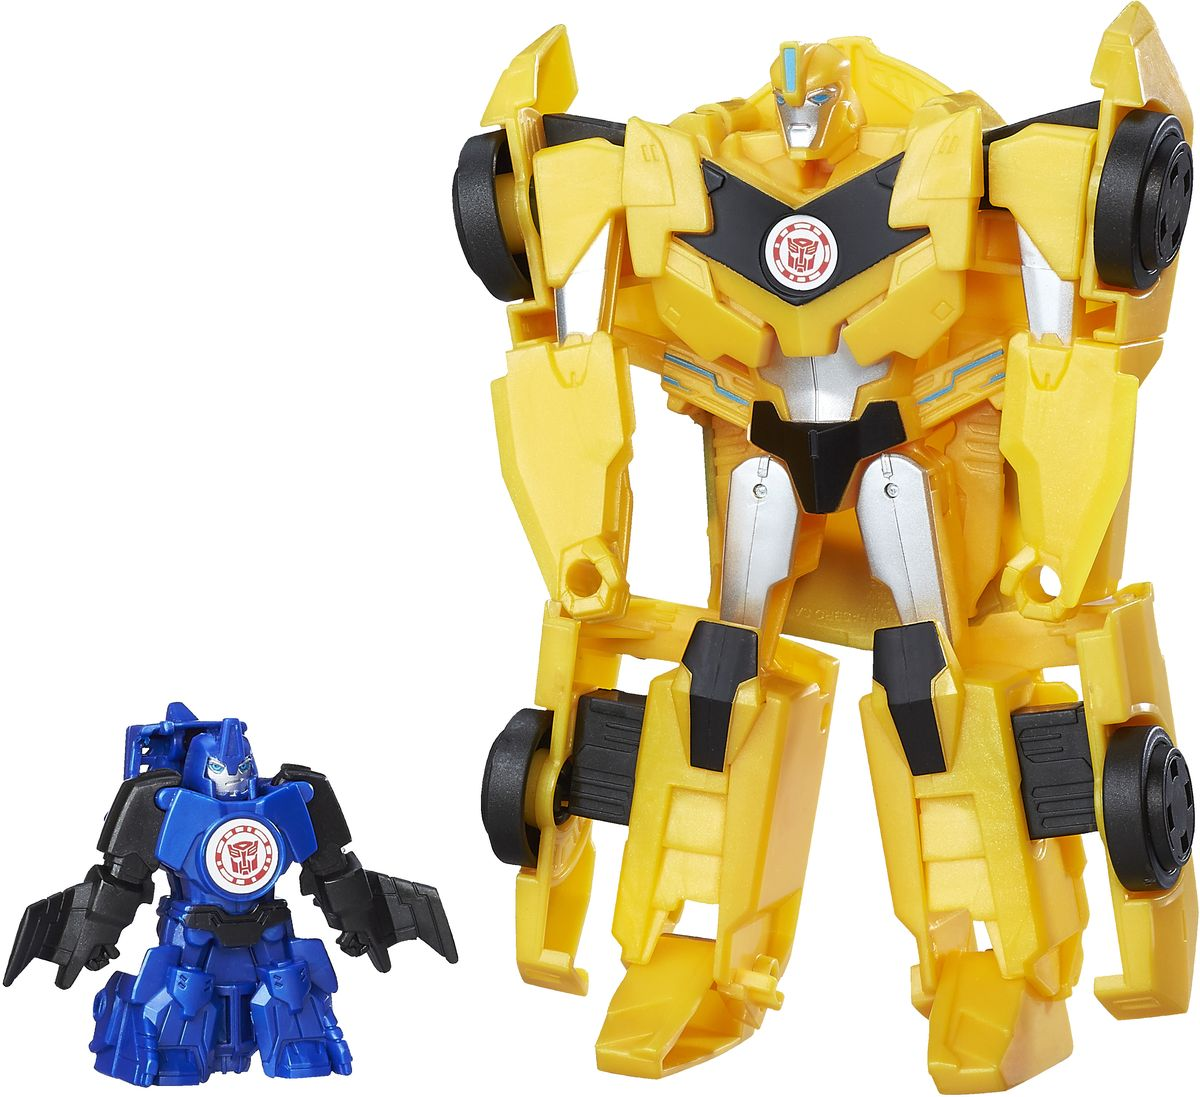 Transformers Трансформер Combiner Force Optimus Prime Stuntwing & Bumblebee fidget its антистрессовая игрушка кубик transformers bumblebee